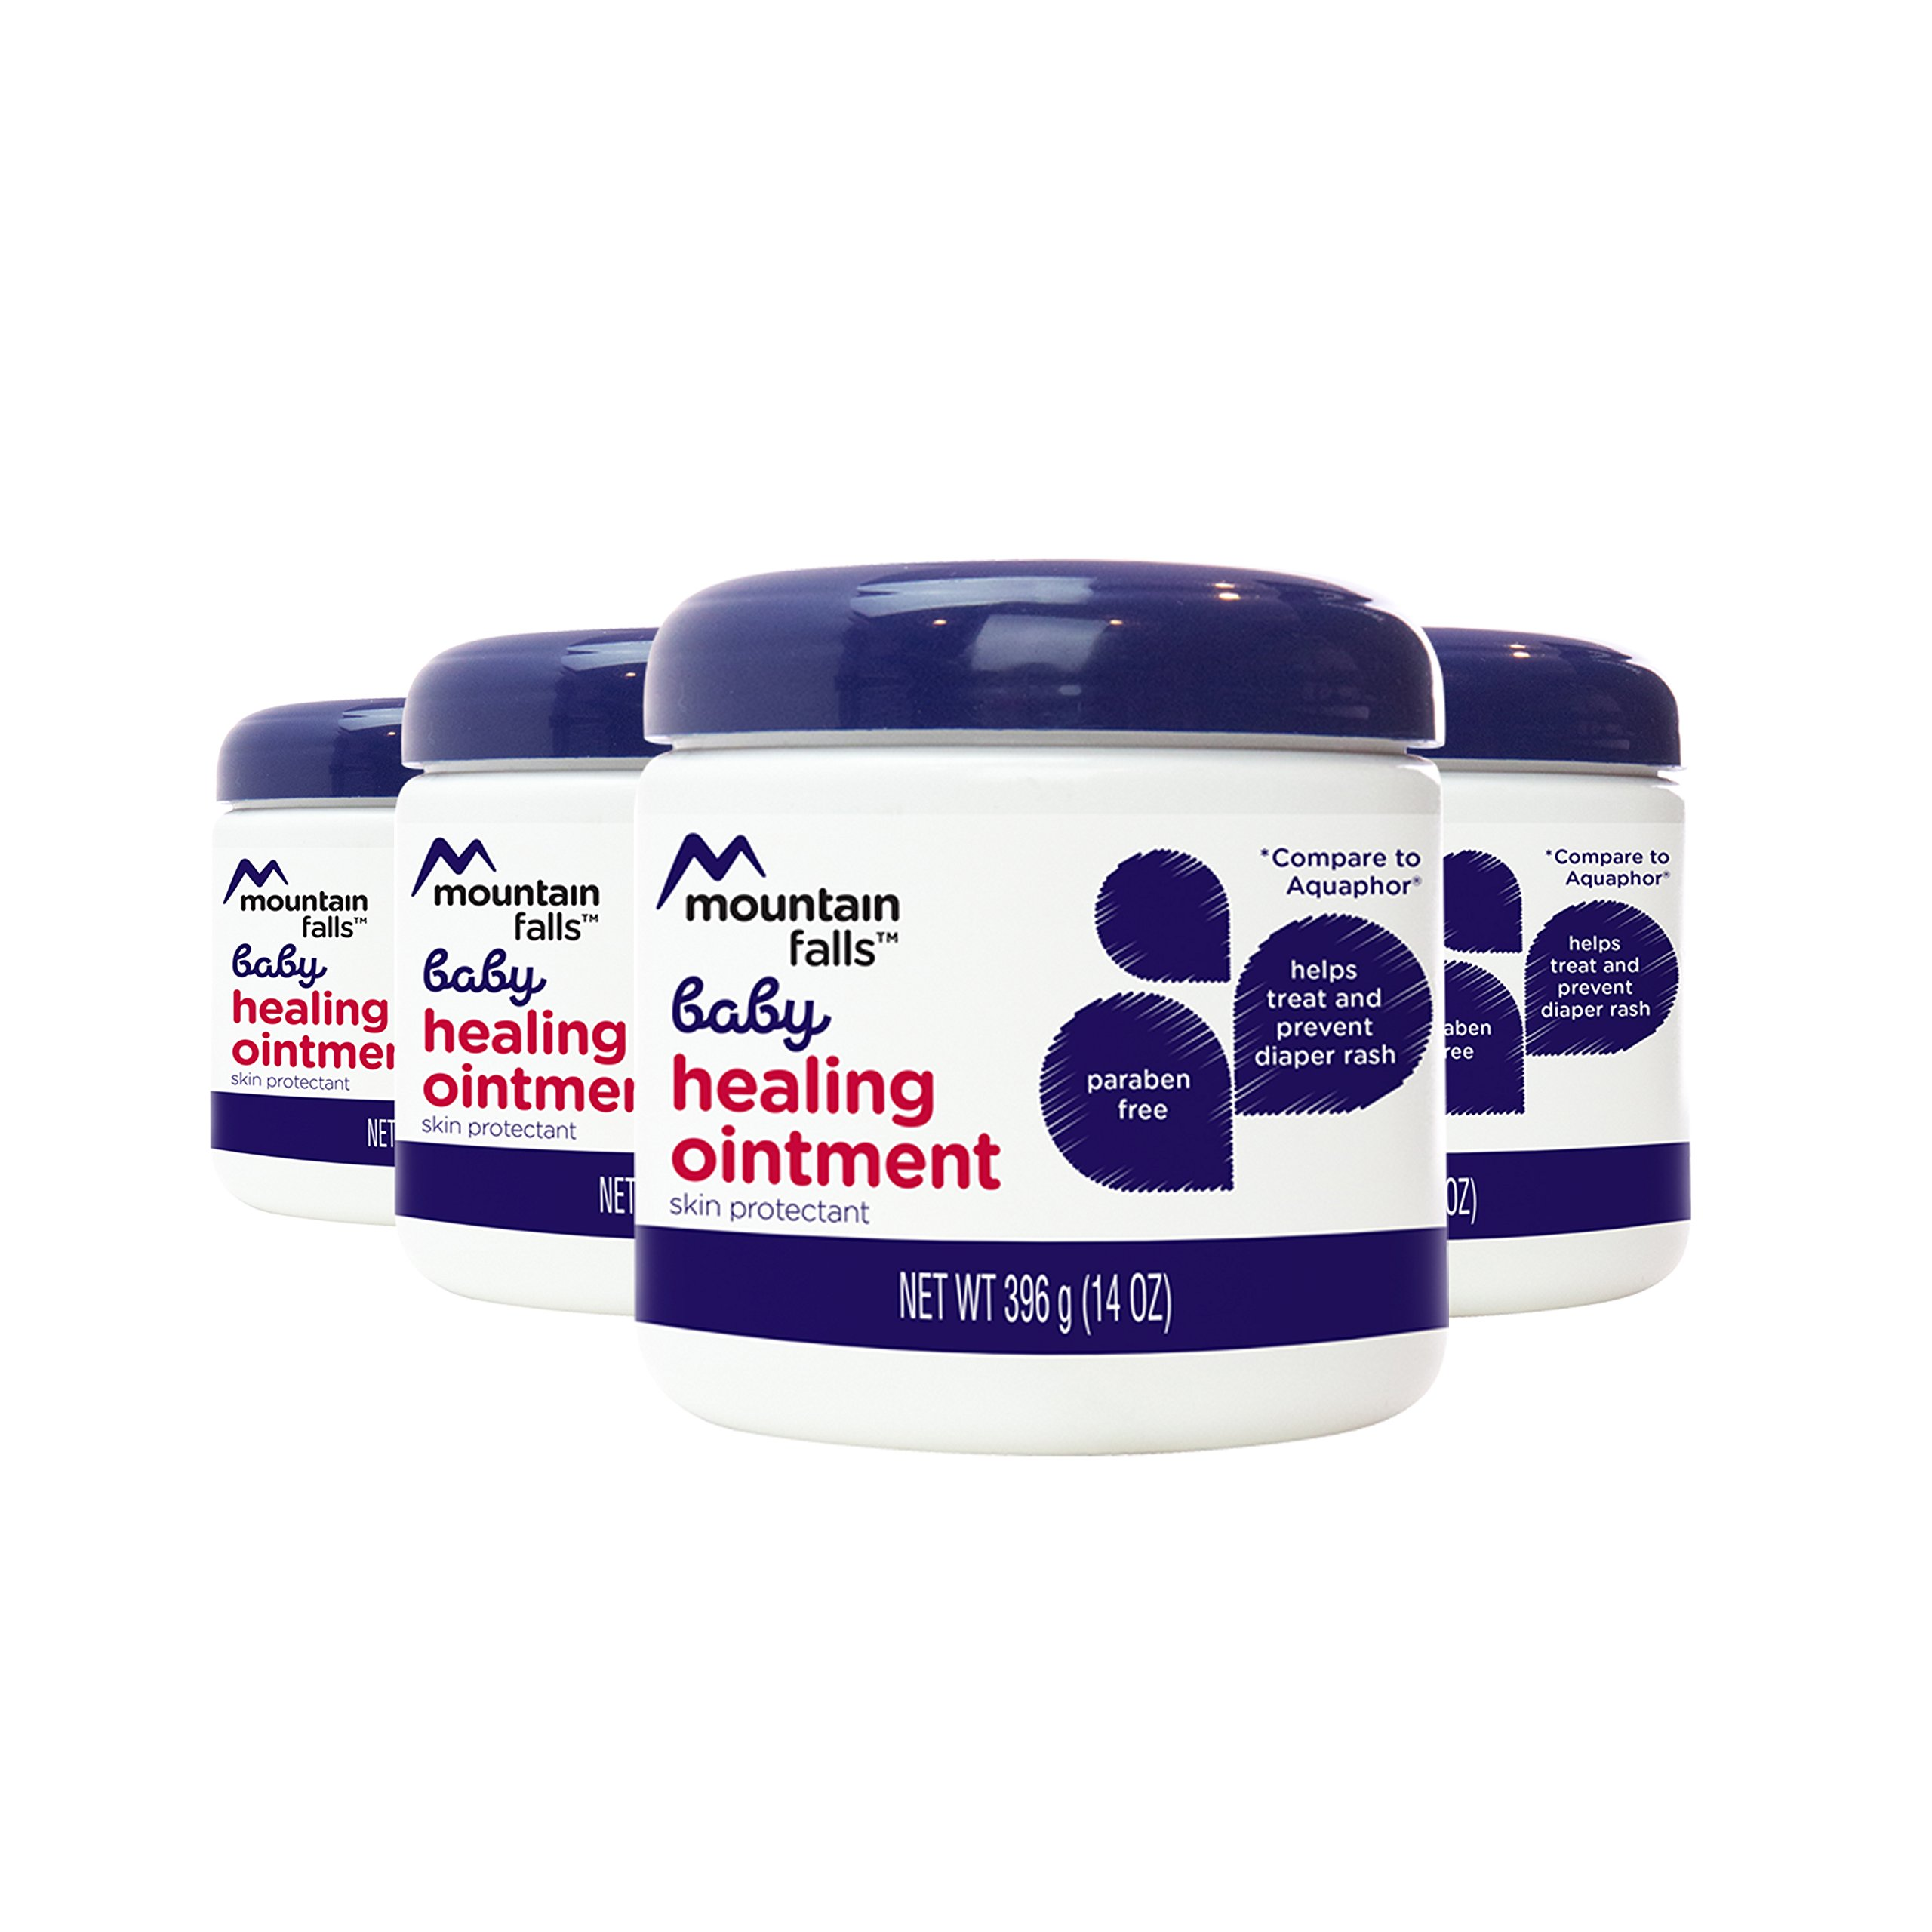 Mountain Falls Baby Healing Ointment for Diaper Rash, 14 Ounce (Pack of 4) by Mountain Falls